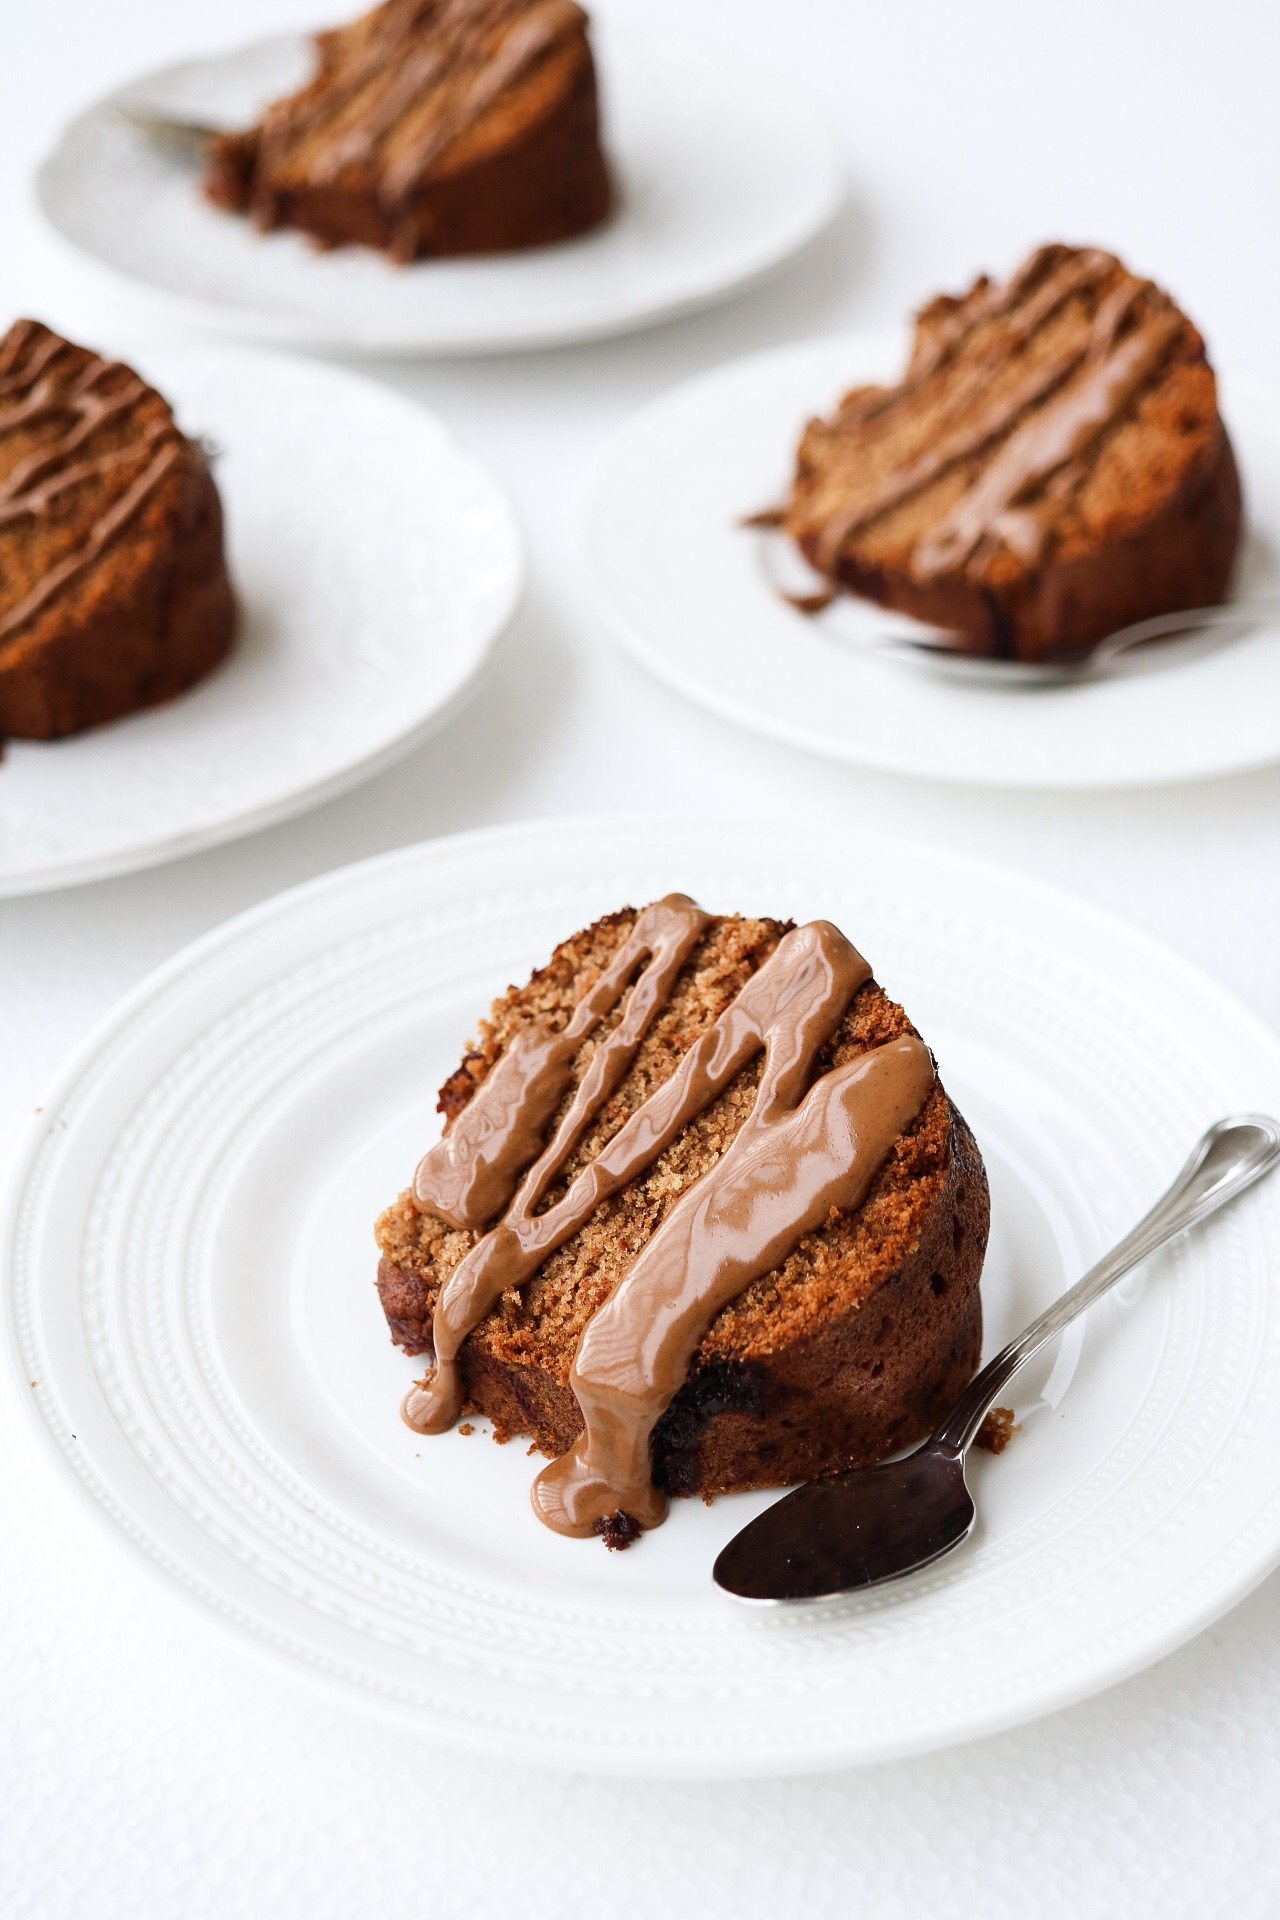 Cinnamon Swirl Bundt Cake - CAKE:4 cups all purpose flour2 tsp baking soda2 tsp baking powder1 tsp salt1 cup neutral oil1 1/2 cup coconut sugar1 1/2 cup + 6 Tbsp water1 tsp cinnamonCINNAMON SWIRL:1/4 cup coconut sugar1 Tbsp cinnamonDIRECTIONS:Preheat your oven to 350*F. In a large bowl, whisk together your flour, baking soda, baking powder, salt, cinnamon, and set aside. In a smaller bowl, combine your oil, sugar, and water. Add your wet ingredients to your dry, and mix until fully incorporated, but don't over-mix the batter. In a tiny bowl, combine your cinnamon swirl mix of sugar and cinnamon. Add in about half of your batter to your bundt cake pan, and sprinkle the batter with Half of the cinnamon swirl mix. Then, pour in the rest of the batter, topping it off with the remaining cinnamon swirl mix. Bake your cake for around 45-50 minutes, and cook more or less as needed. Then just let it cool, and enjoy the goodness.